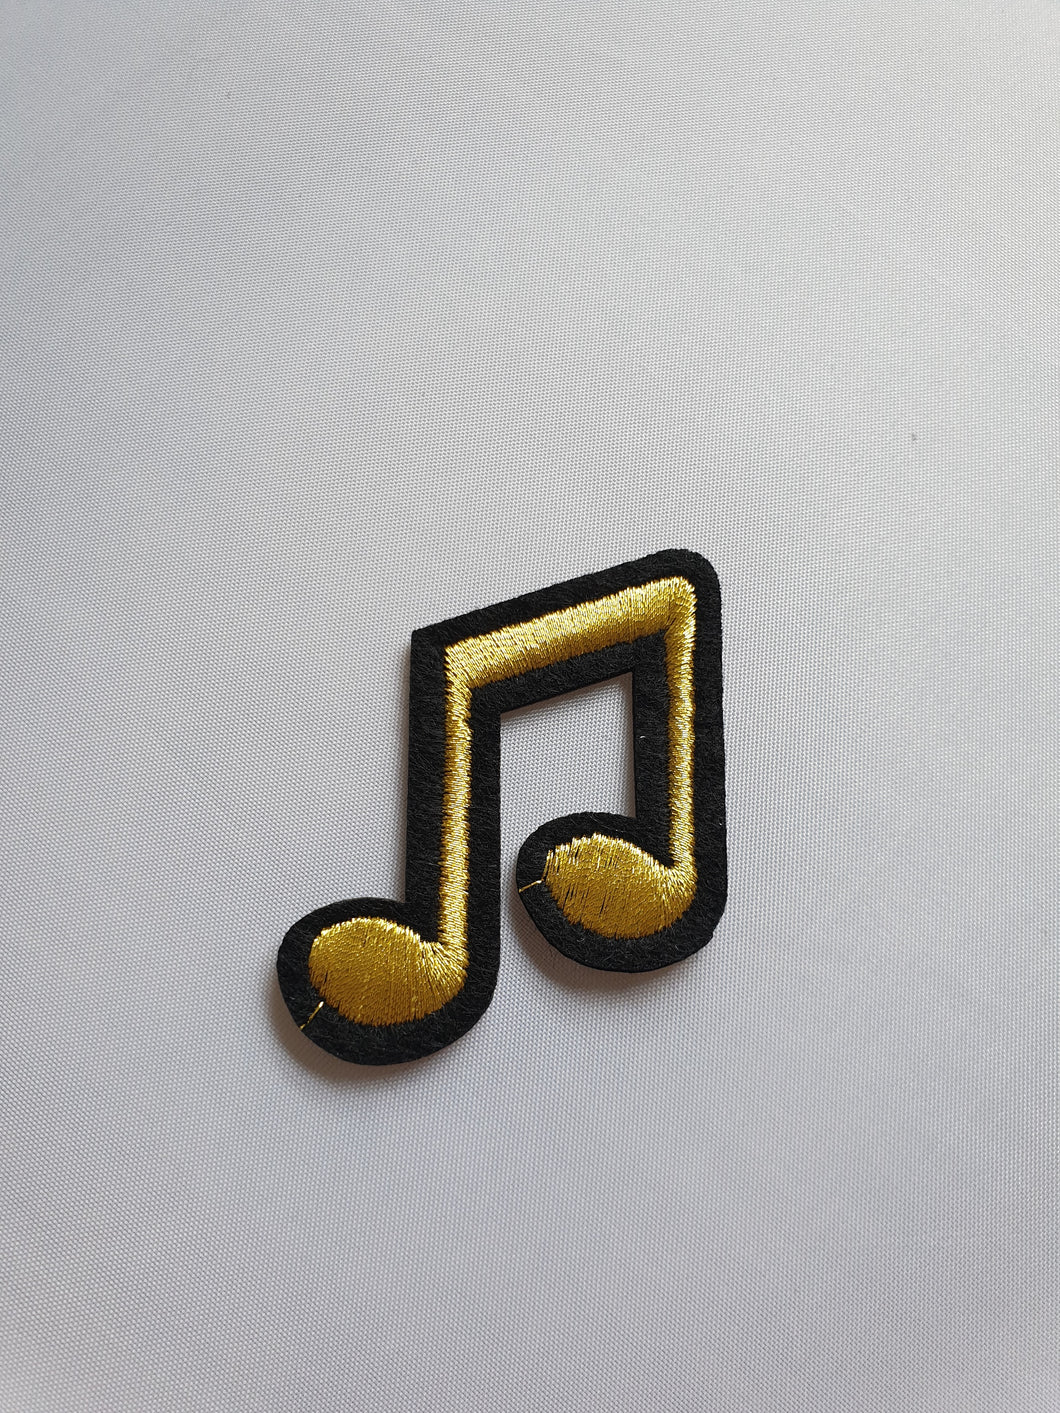 Black & gold music motif - In Stock